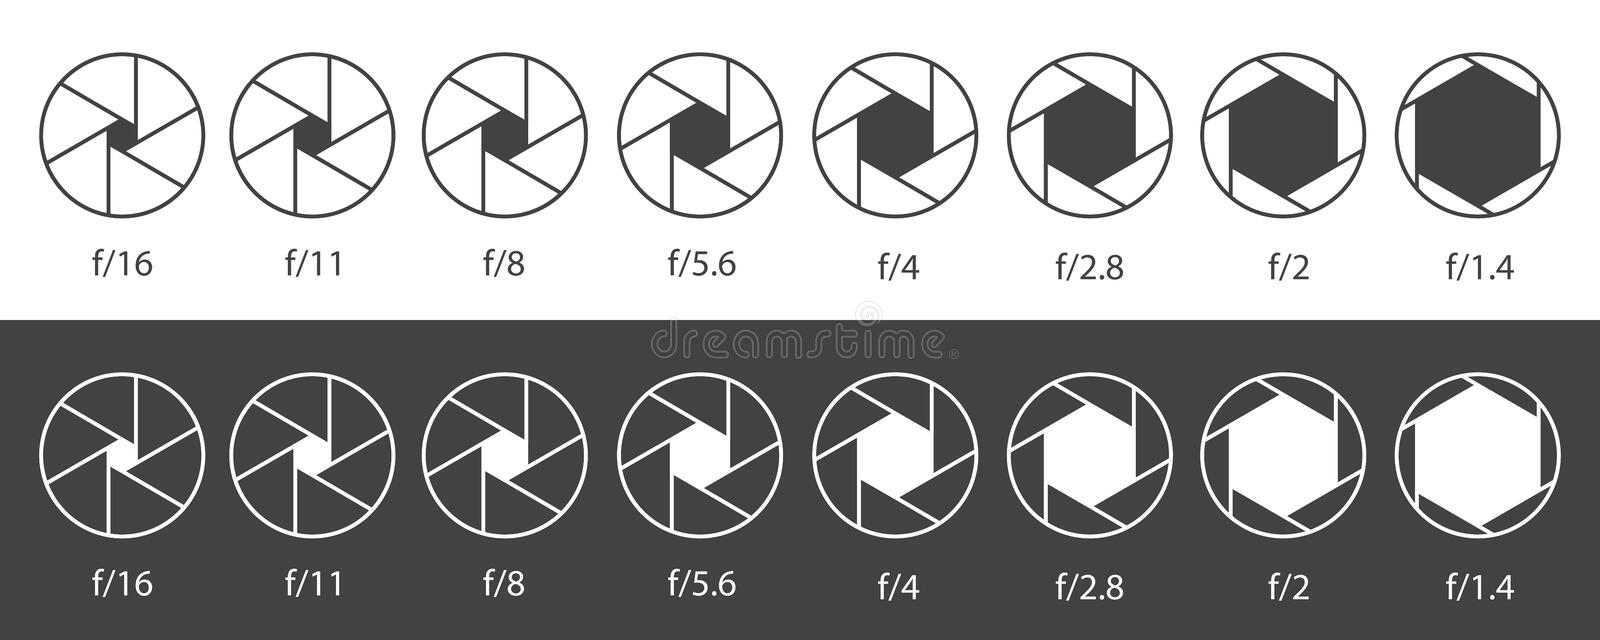 Creative vector illustration of camera shutter aperture with different iso isolated on transparent background. Art. Design monochrome diagrams collection vector illustration